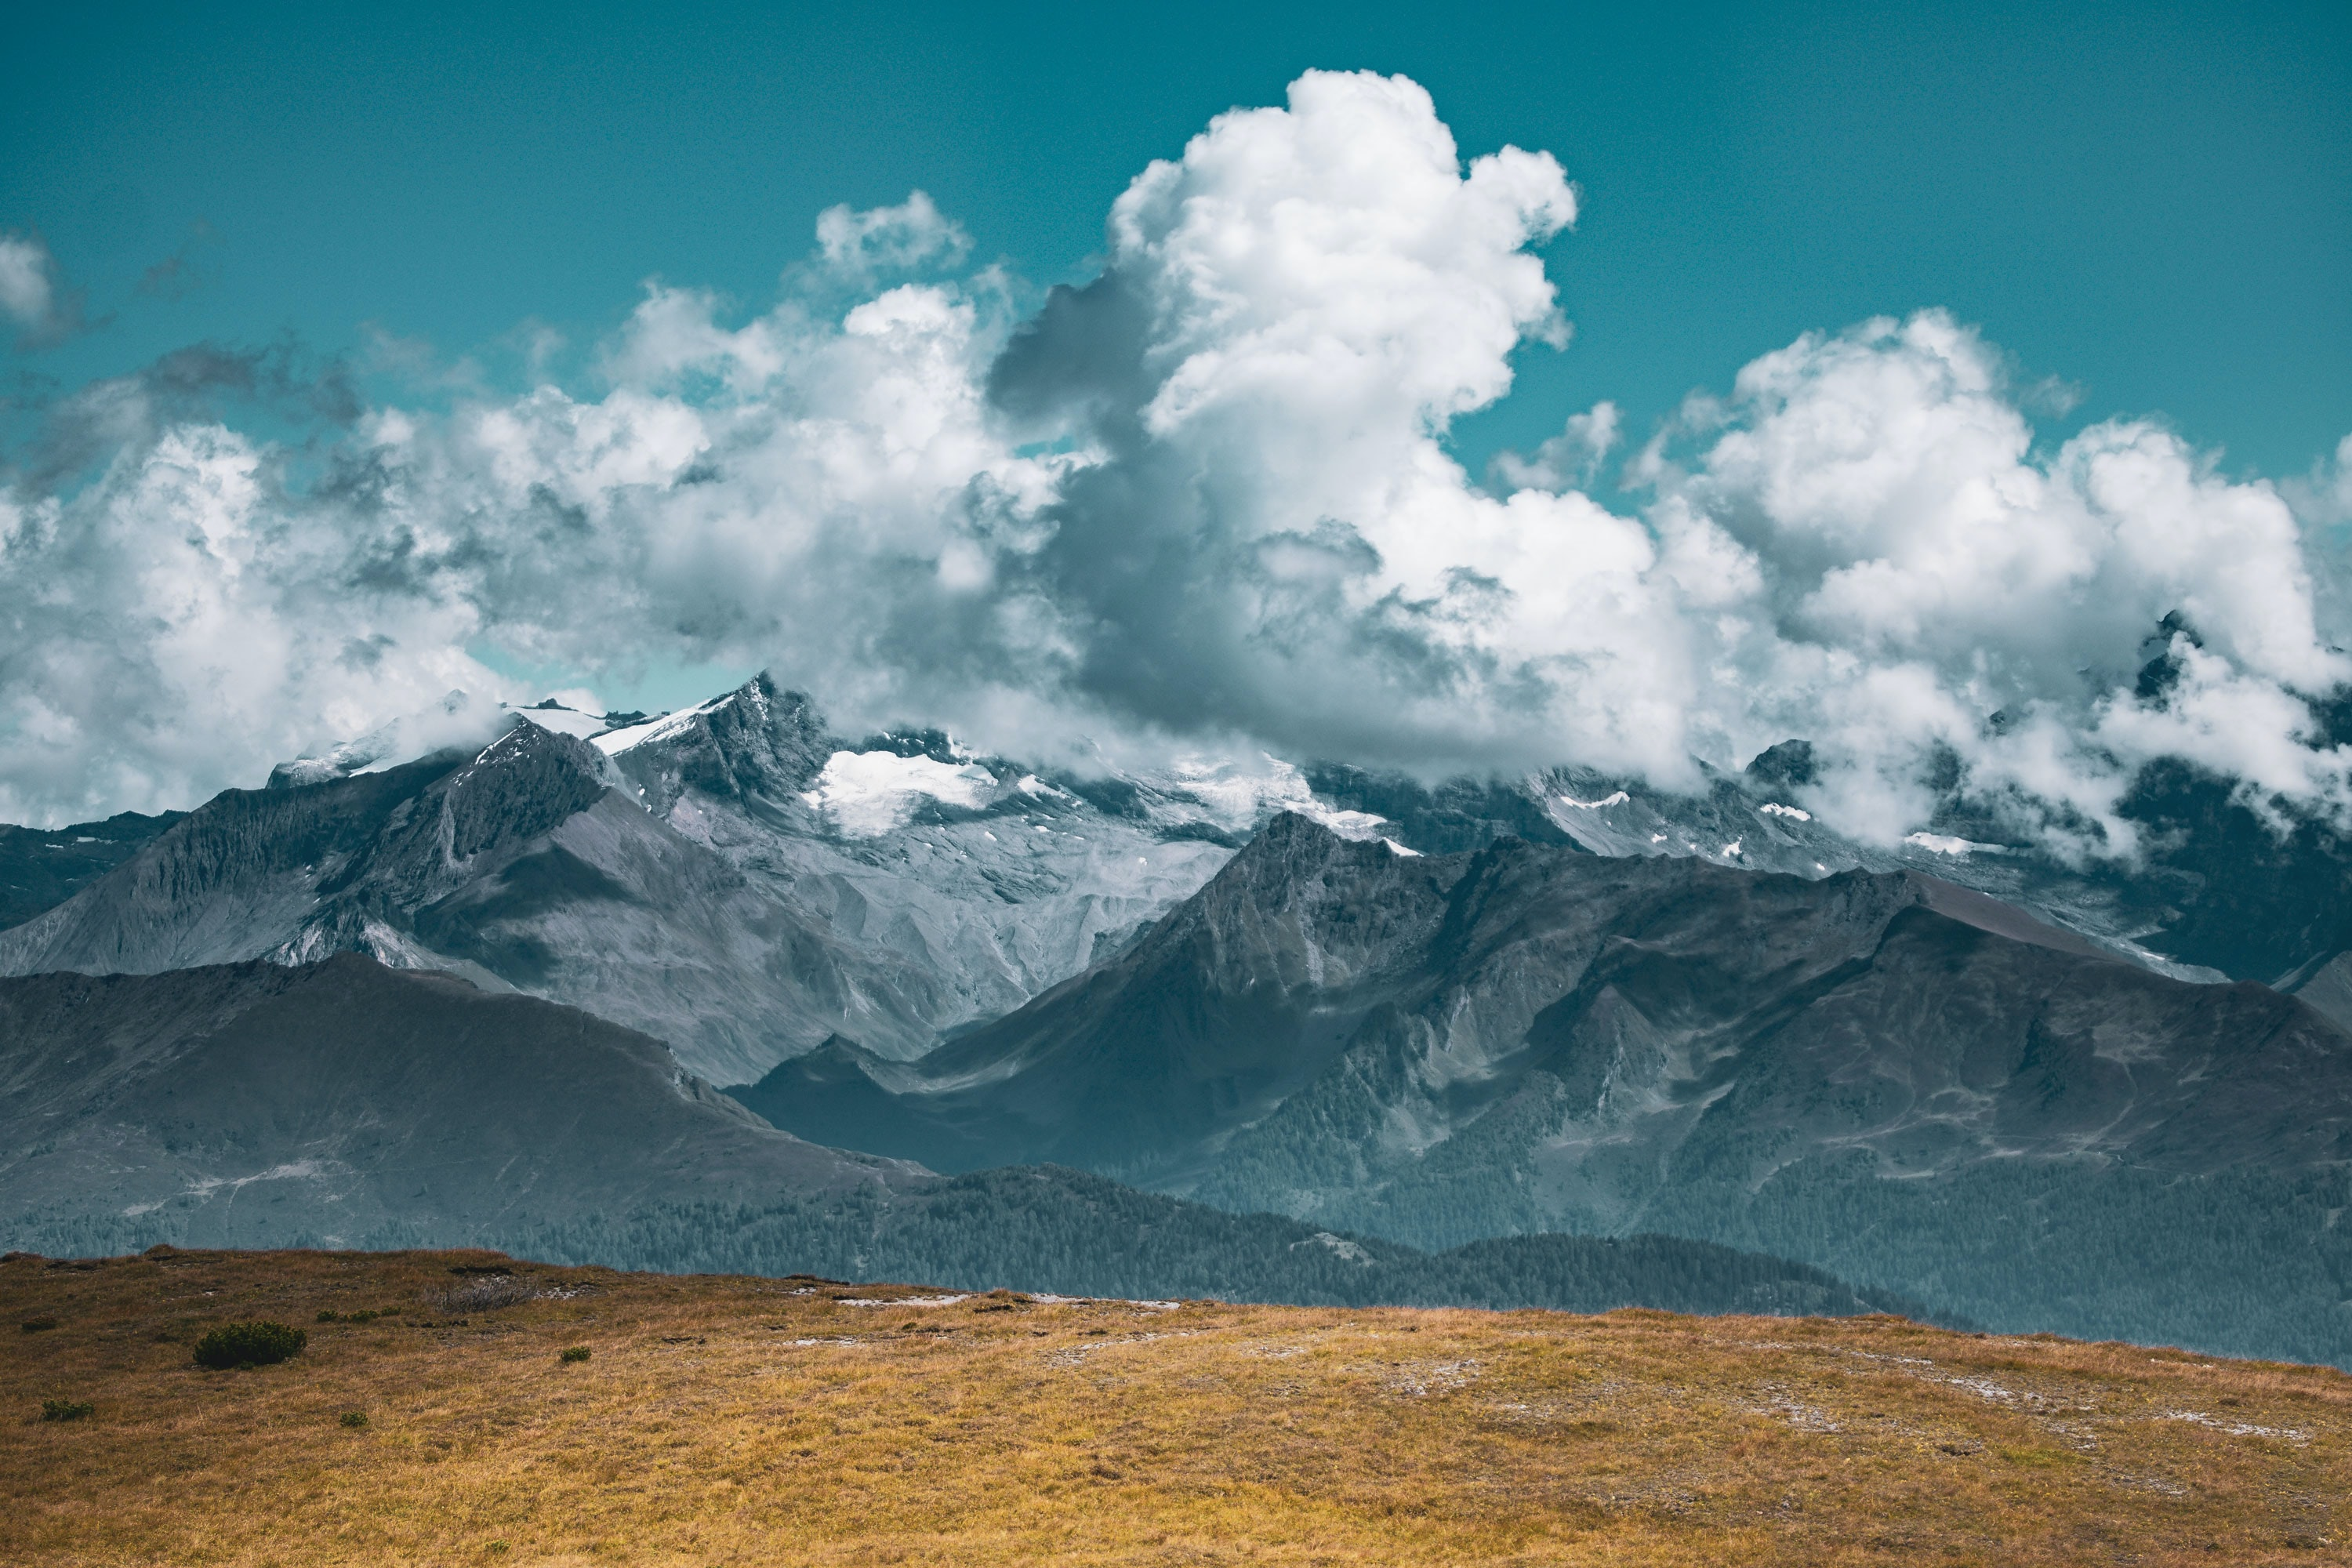 cloud formation over mountains